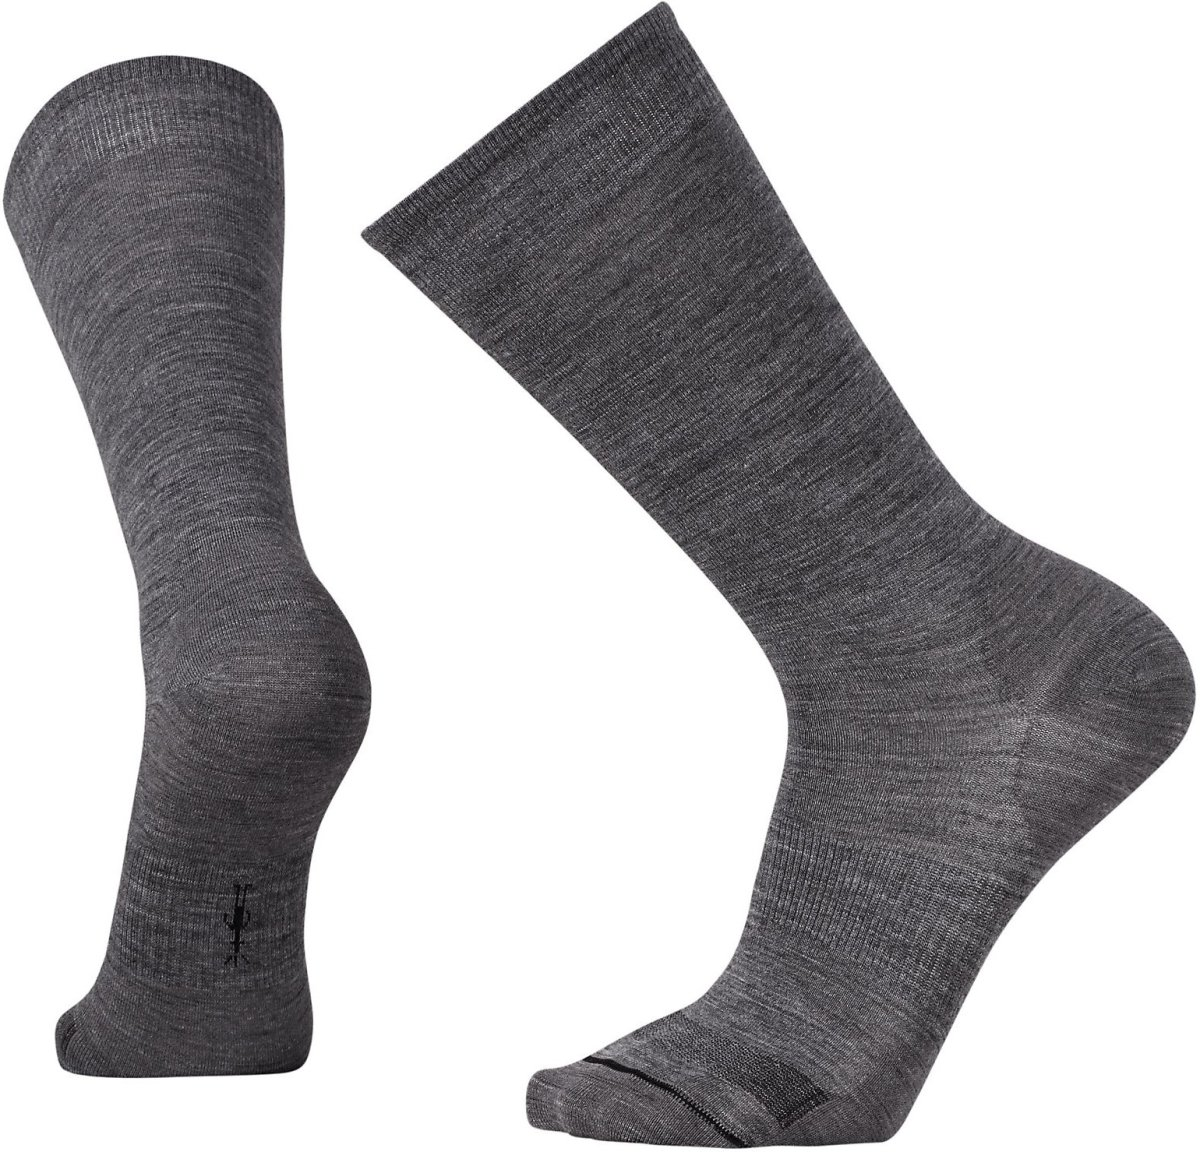 Носки Smartwool Anchor Line (Medium Gray/Black) 3 Anchor Line SW SW960.251-XL SW SW960.251-L